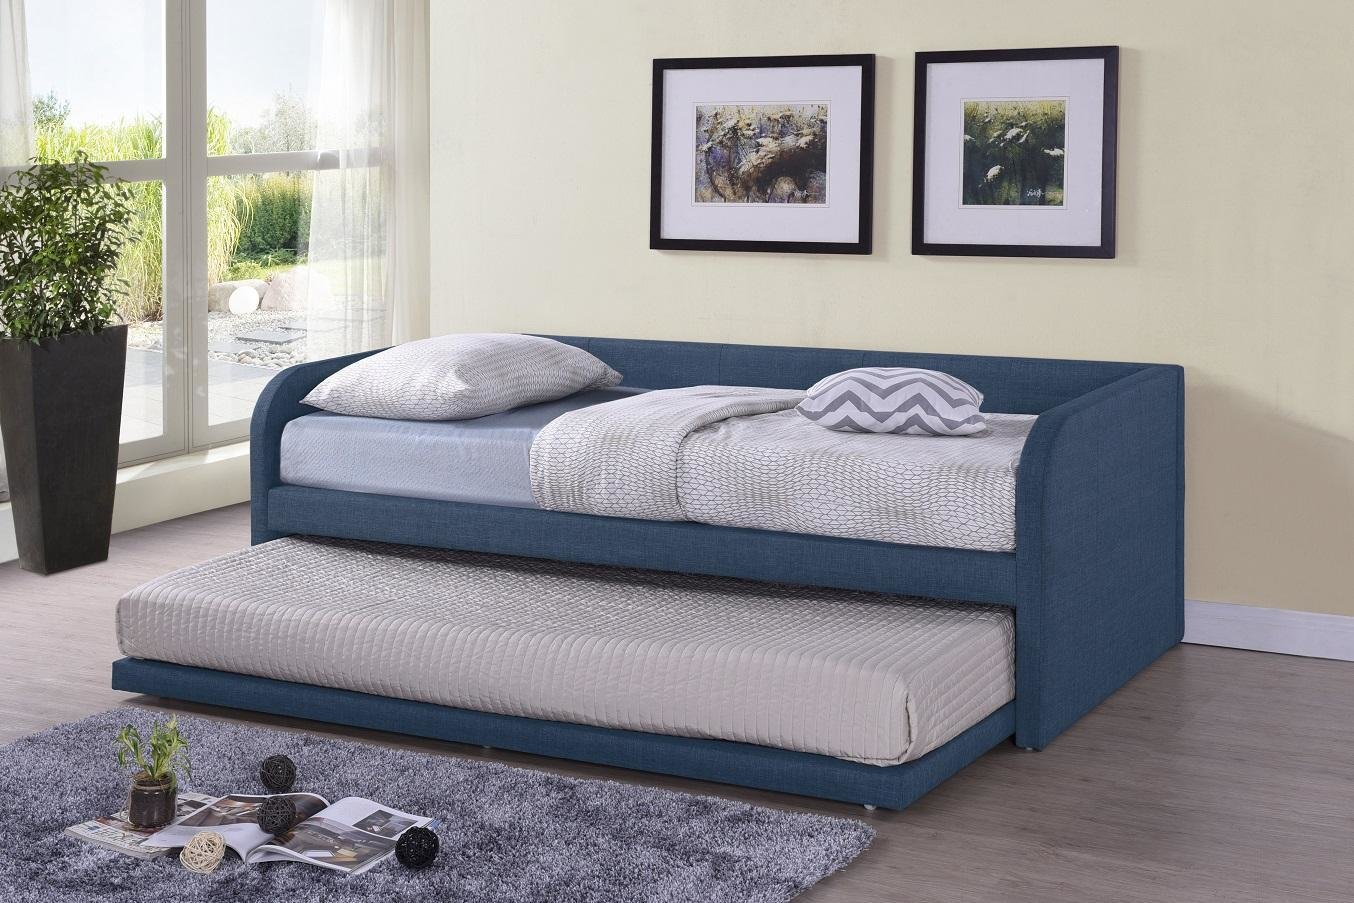 Best Bedroom Furniture For Sale Bedroom Furniture Sets Prices With Pictures